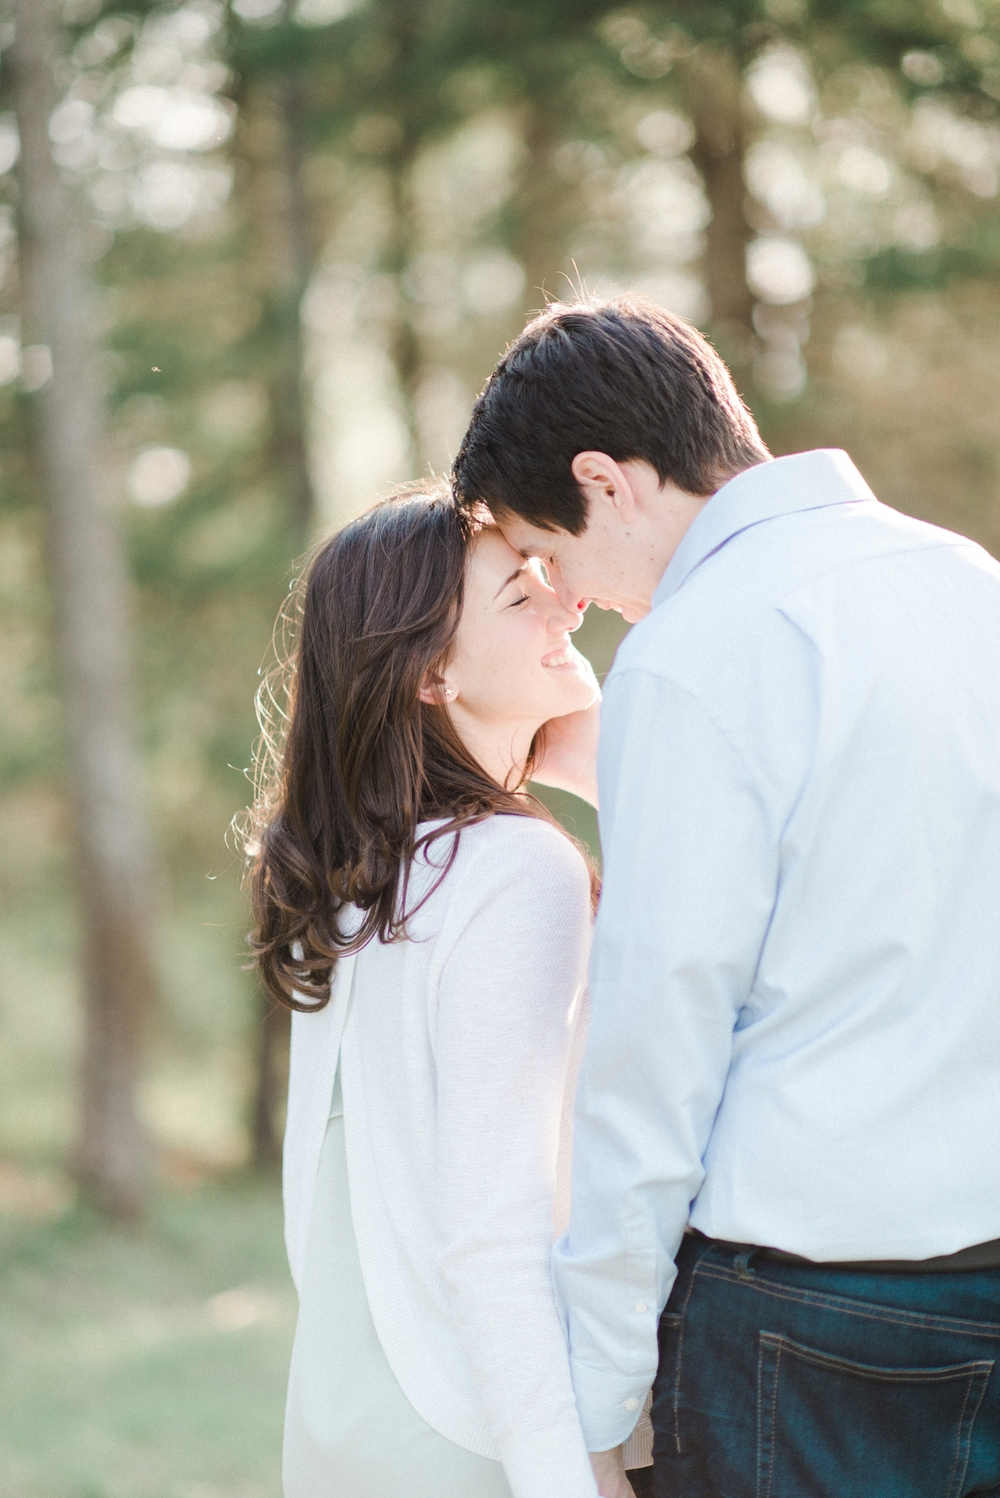 virginia_wedding_photographer_charlottesville_engagemnet_ashlawn_highland_0006.jpg